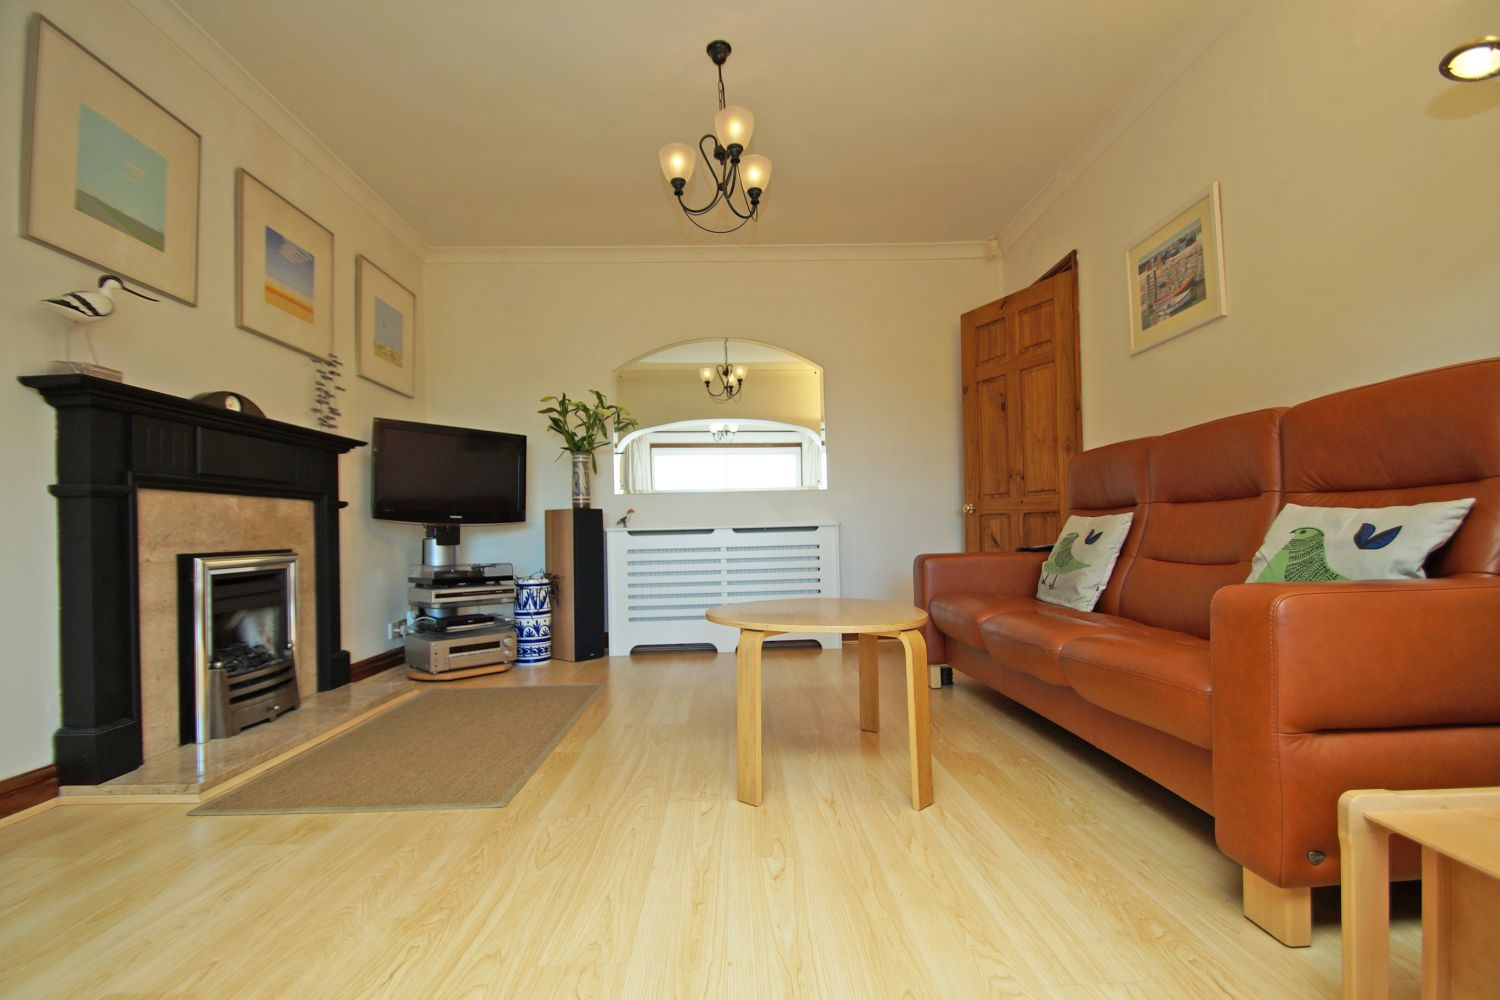 3 bed detached for sale in Fox Lane, Bromsgrove  - Property Image 9